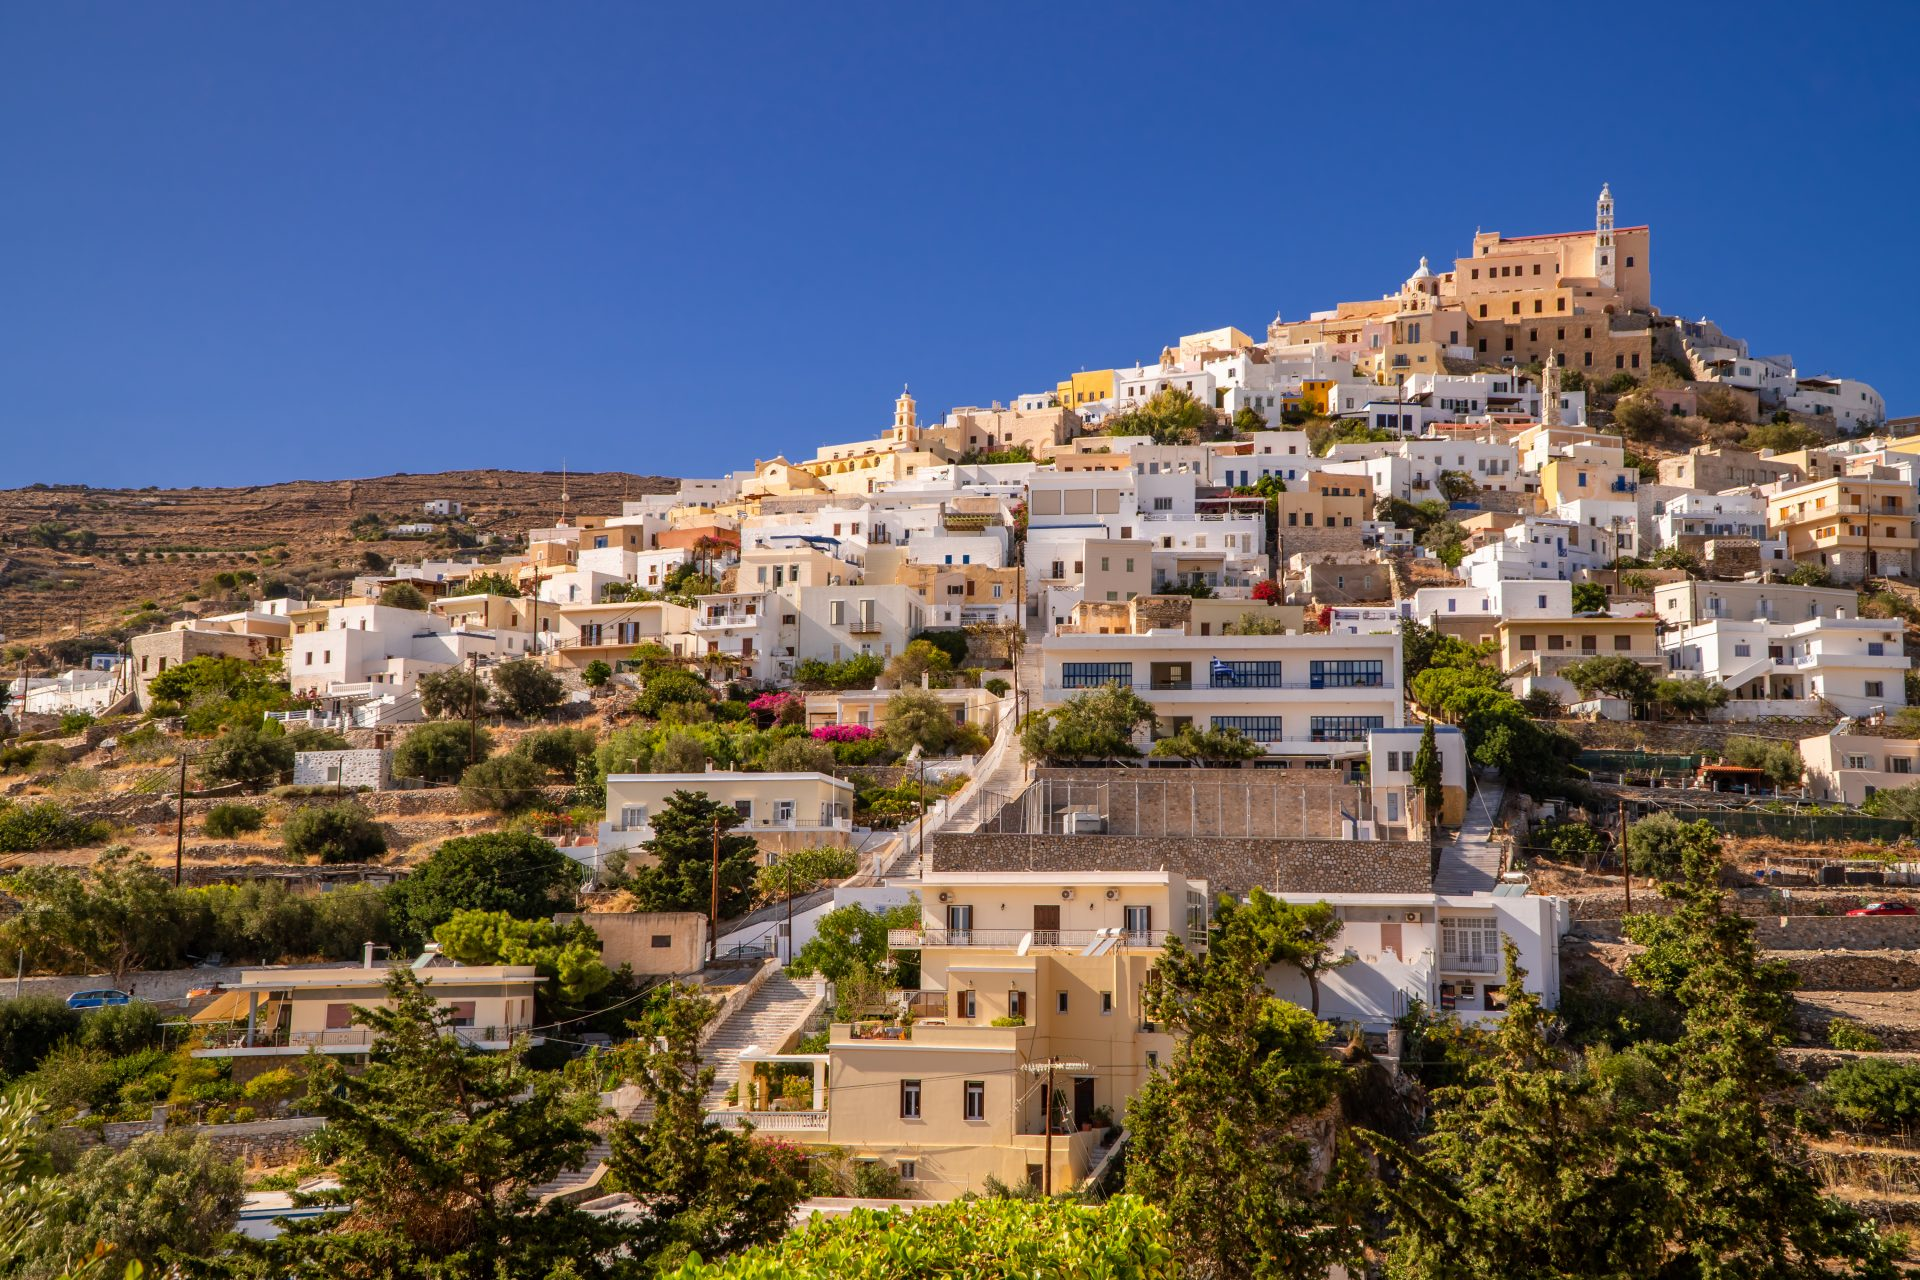 Digital Nomad Greece Guide - Panoramic view of the town of Ano Syros - the old town of Ermoupoli, Syros - Cyclades, Greece